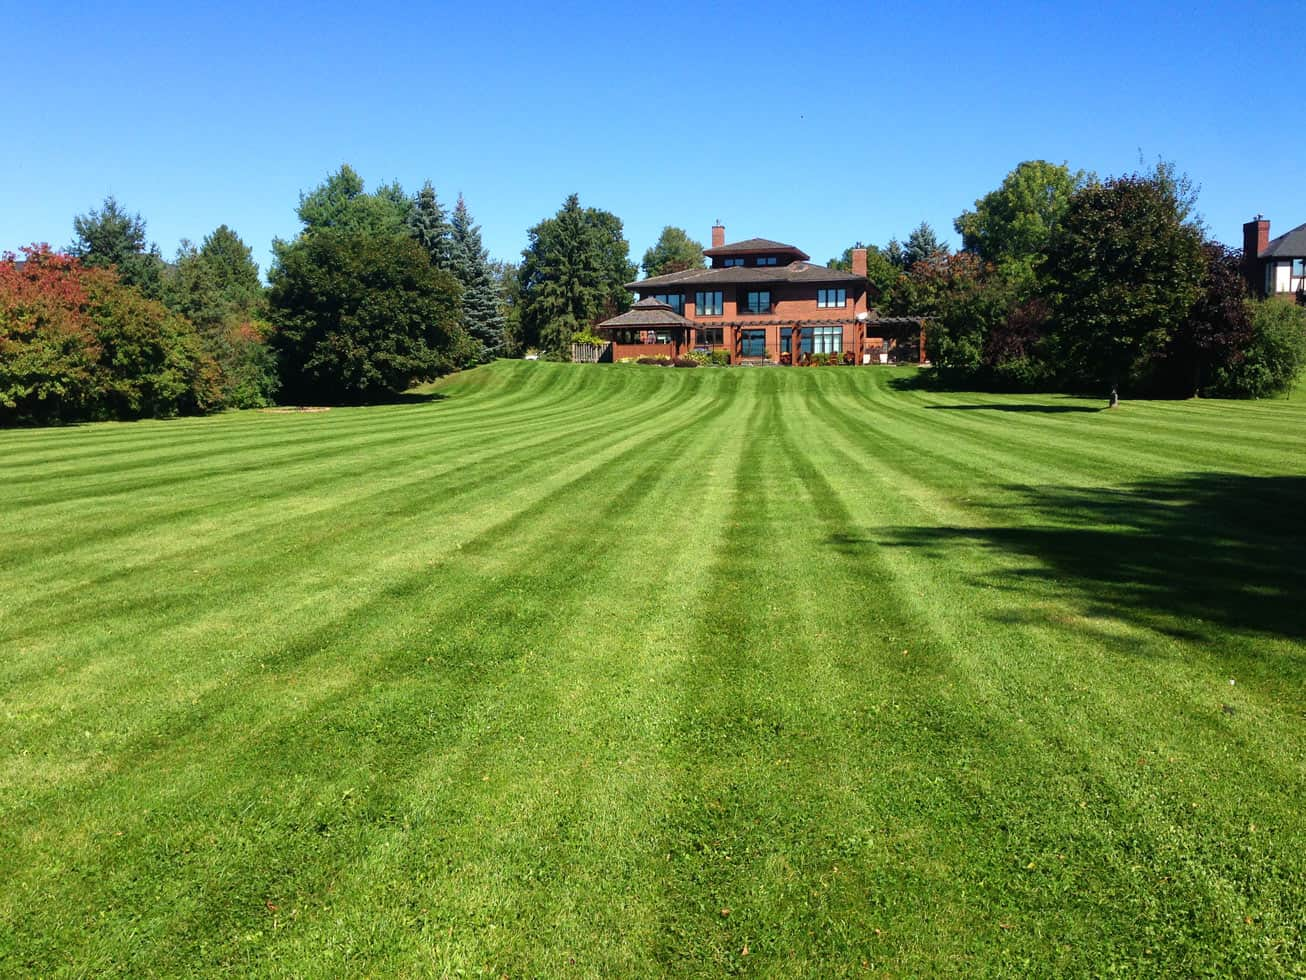 lawn infront of house large